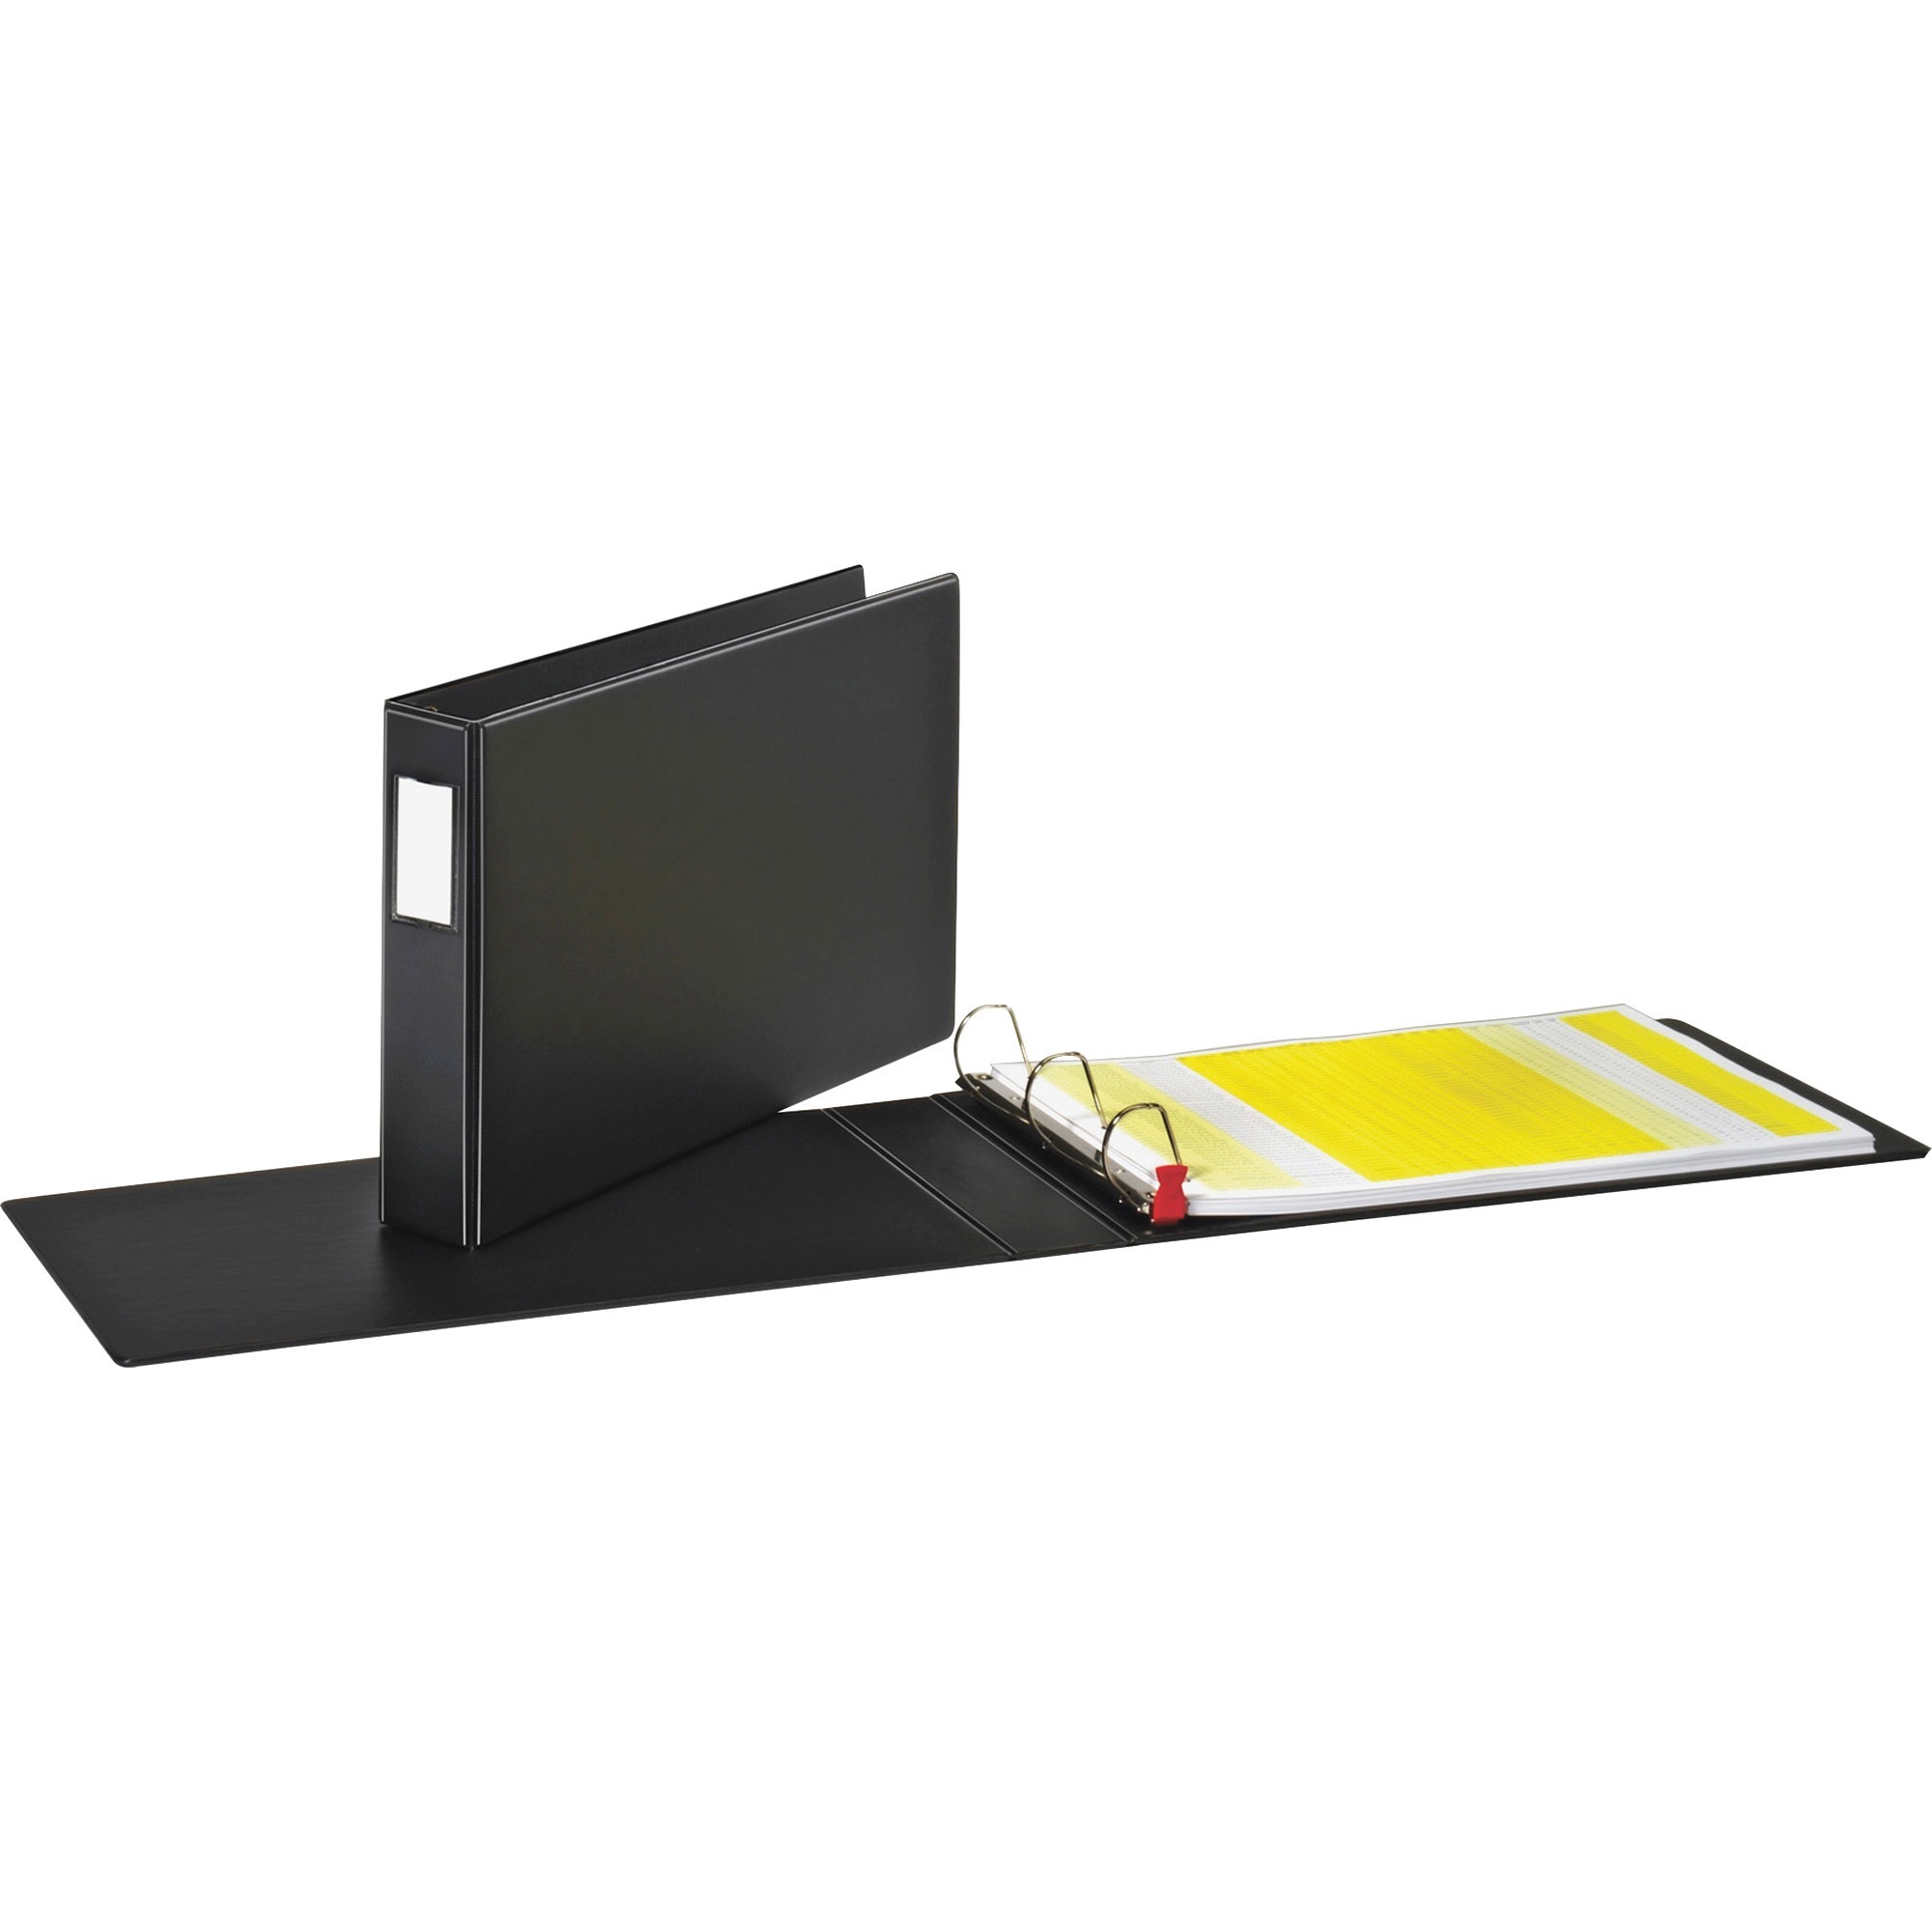 "Premier Easy Open 11 x 17 Locking Slant-D Ring Binder, 2"" Cap, Black"